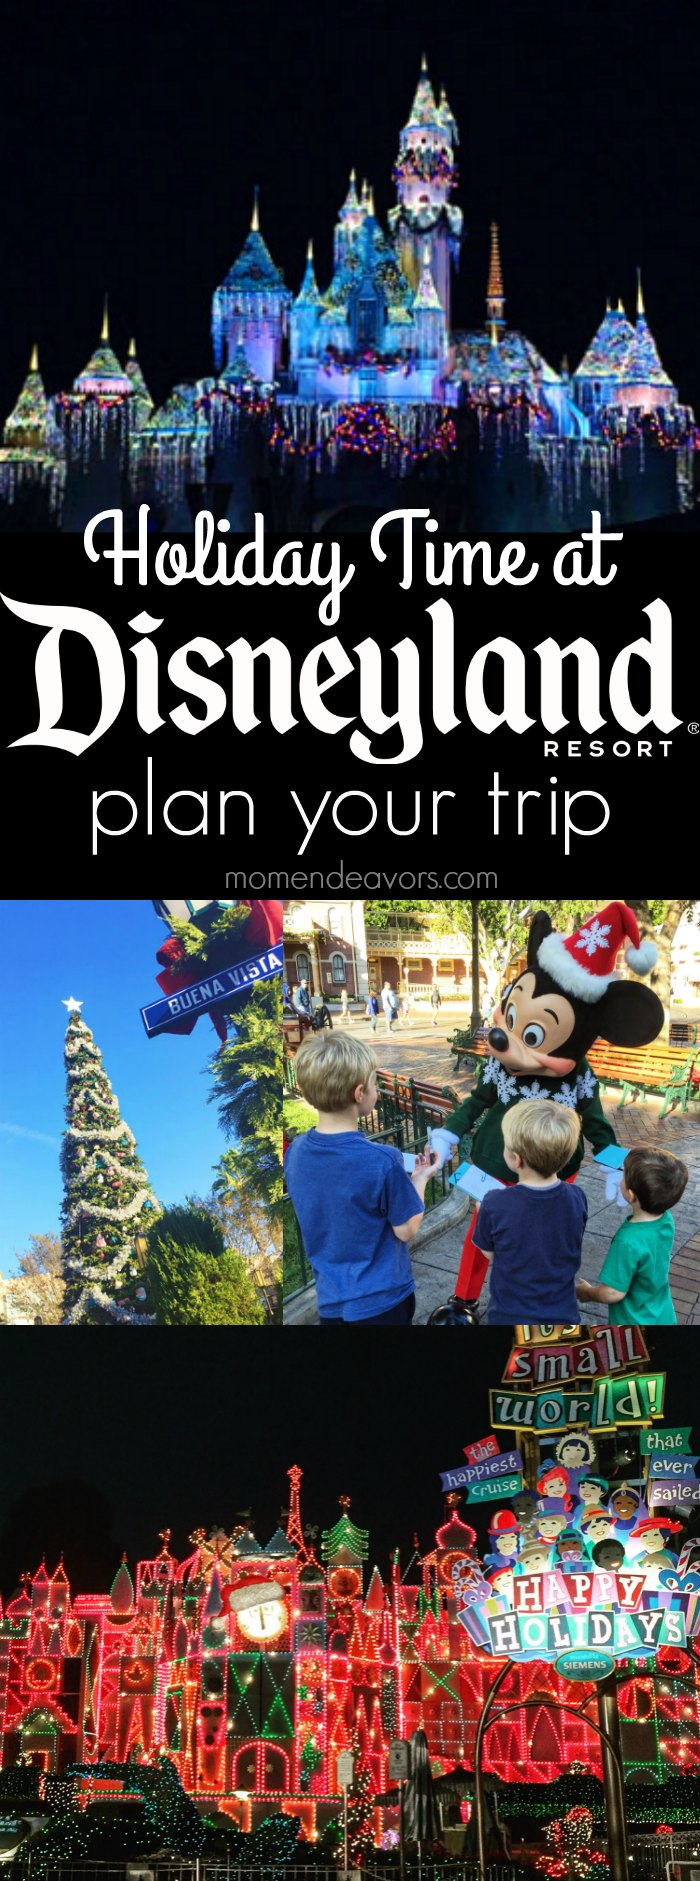 Holidays at Disneyland Resort Guide